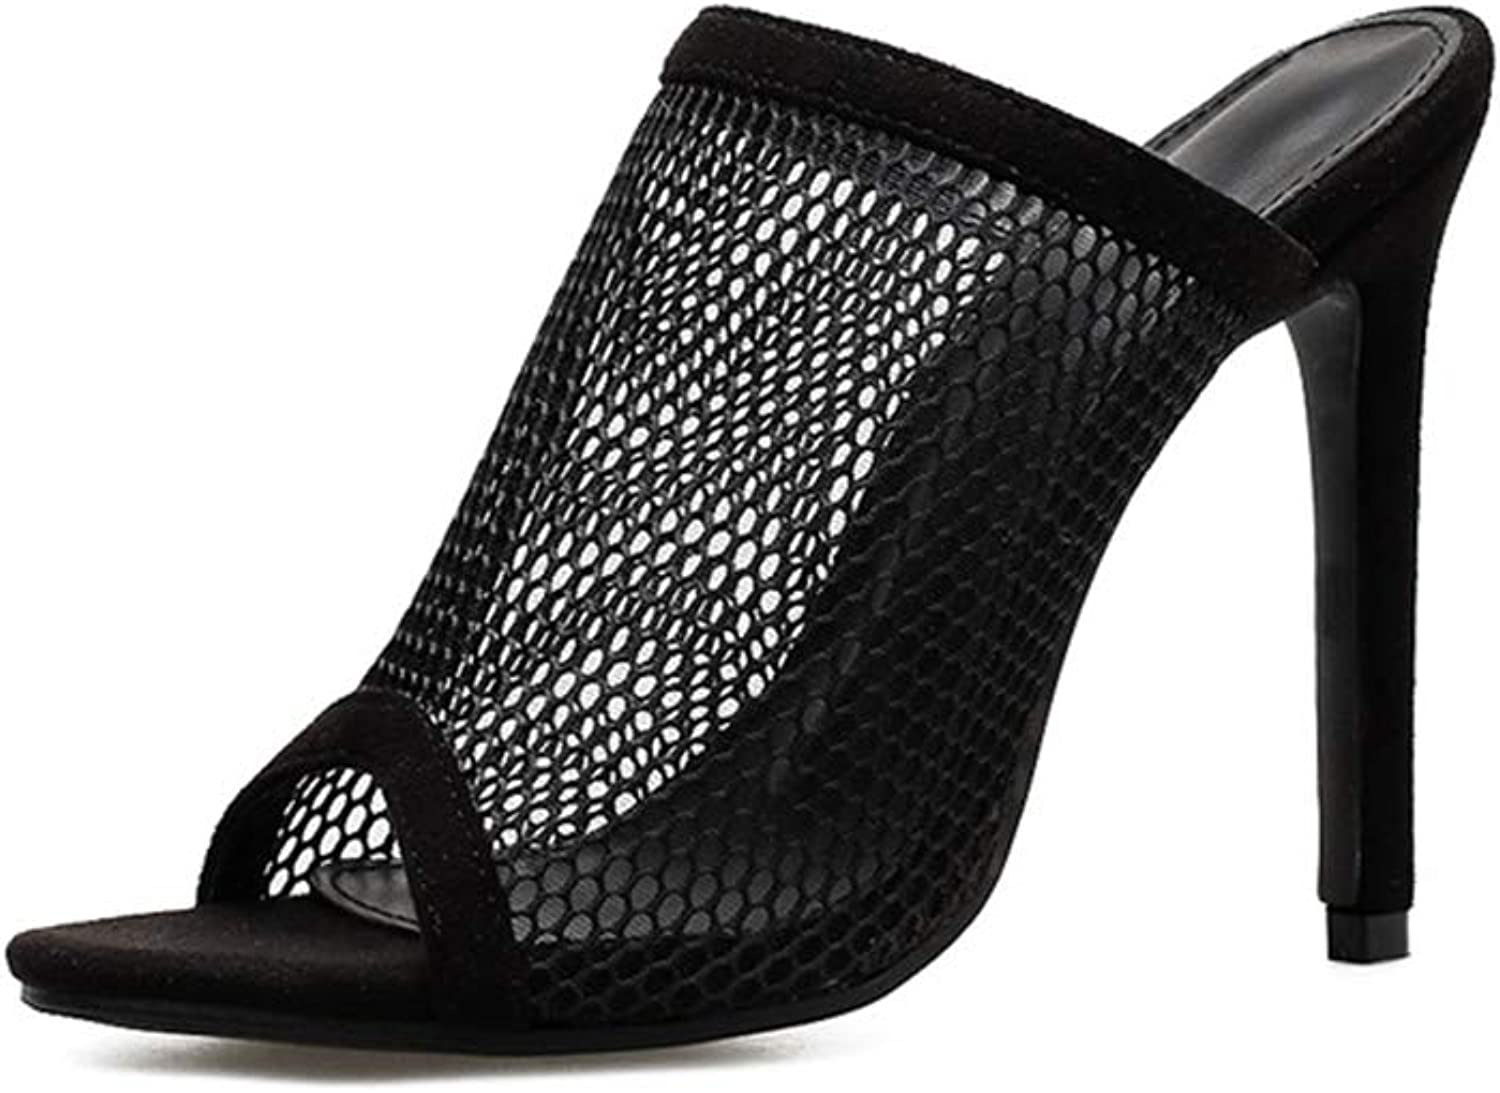 Womens High Heeled Sandals Mesh Hollow Fish Mouth Slippers